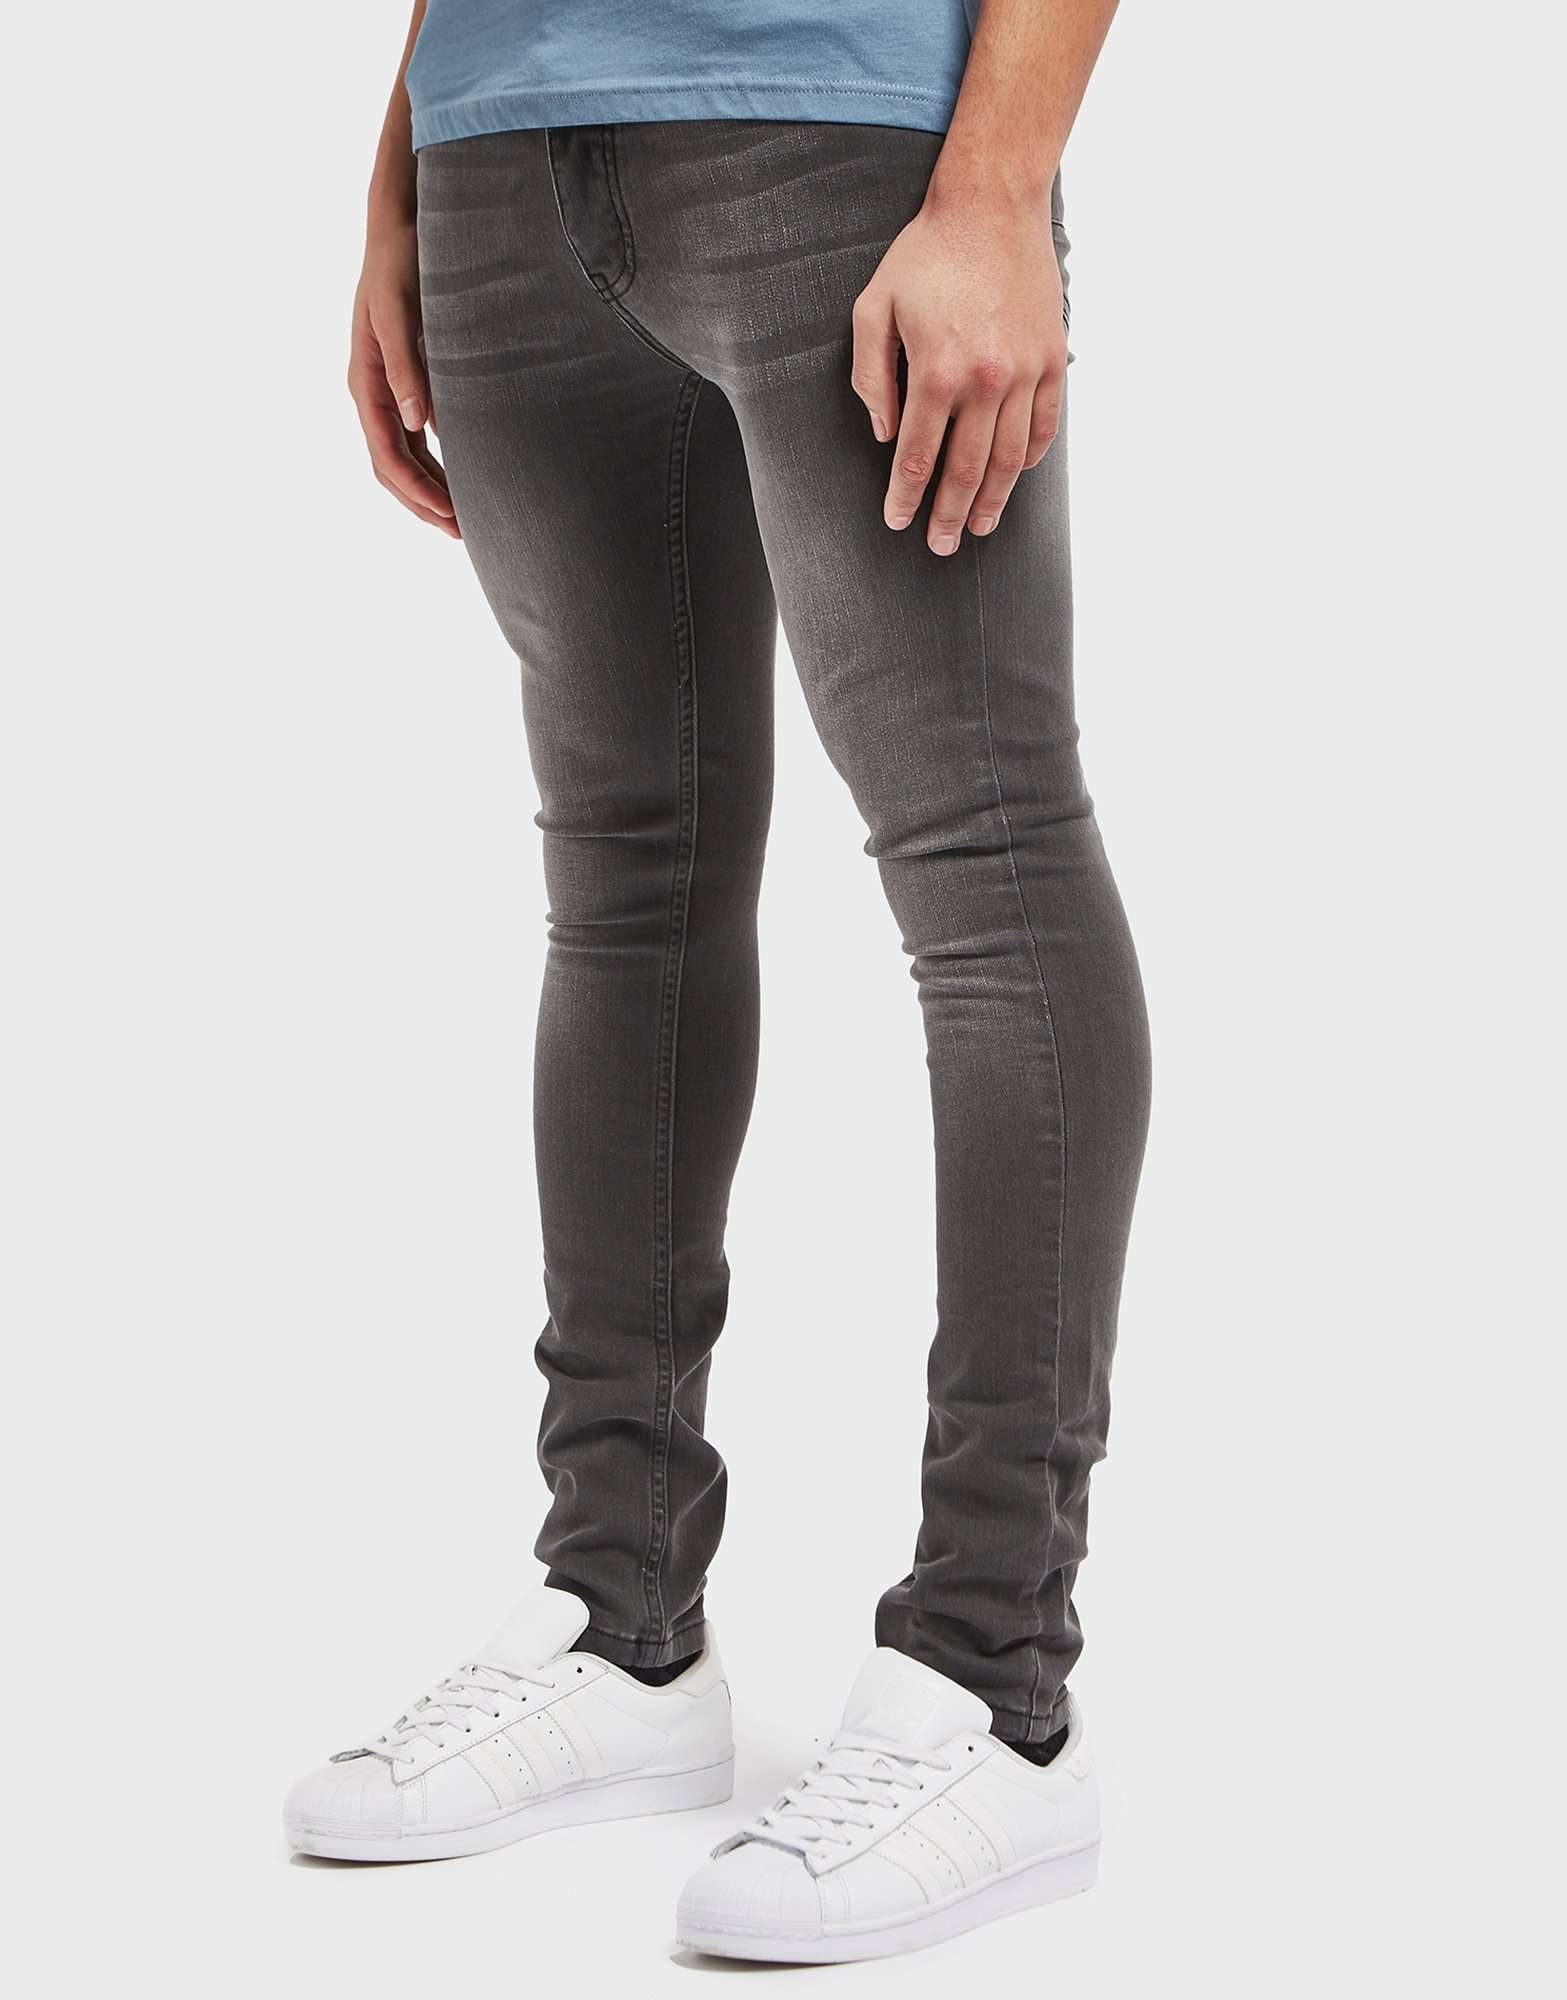 One True Saxon Grey Wash Skinny Jeans - Exclusive